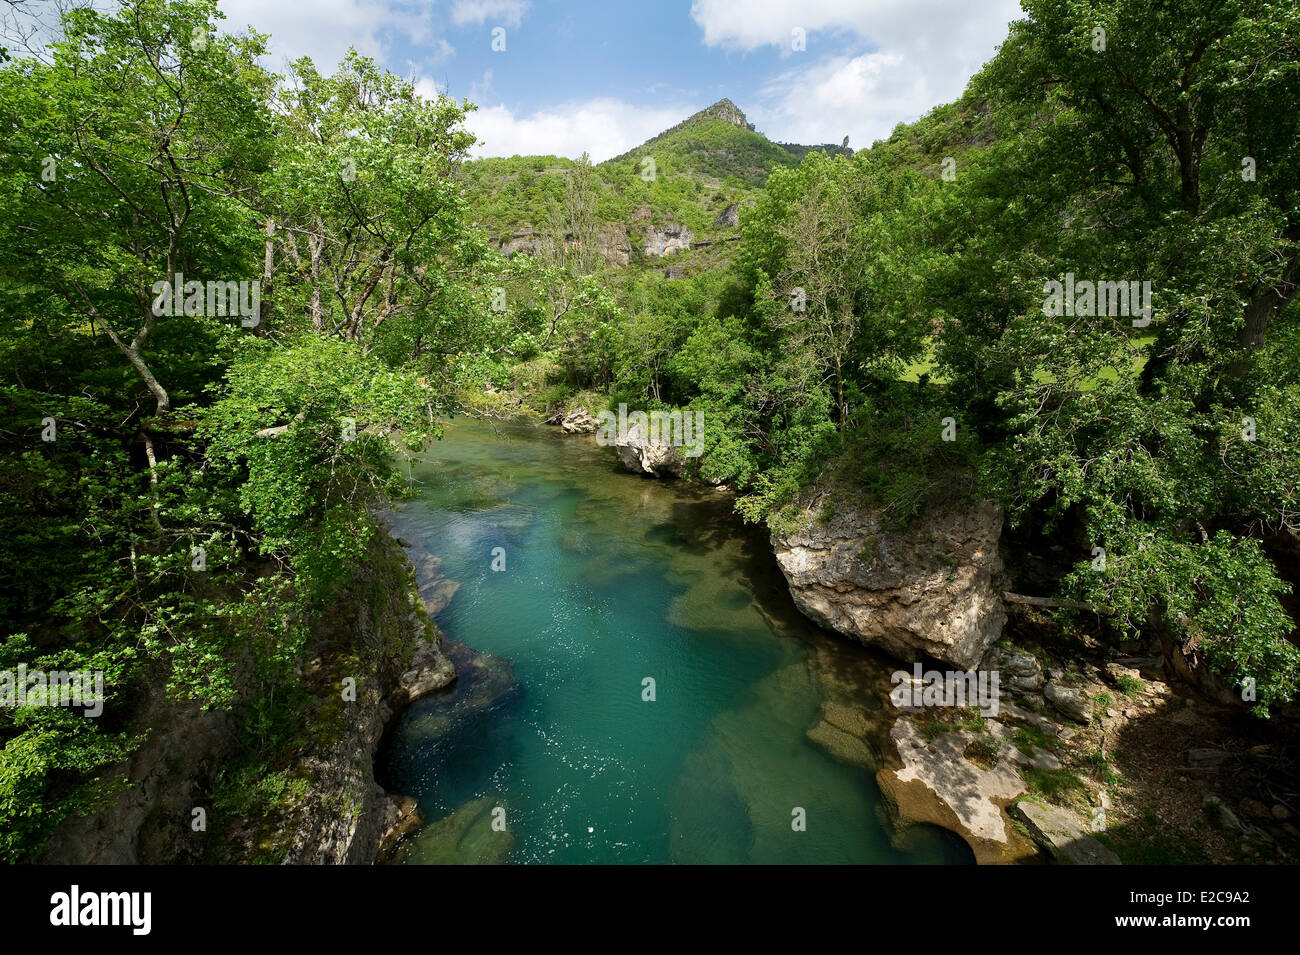 France, Aveyron, Nant, Dourbie Gorge from the deck of the mill body - Stock Image